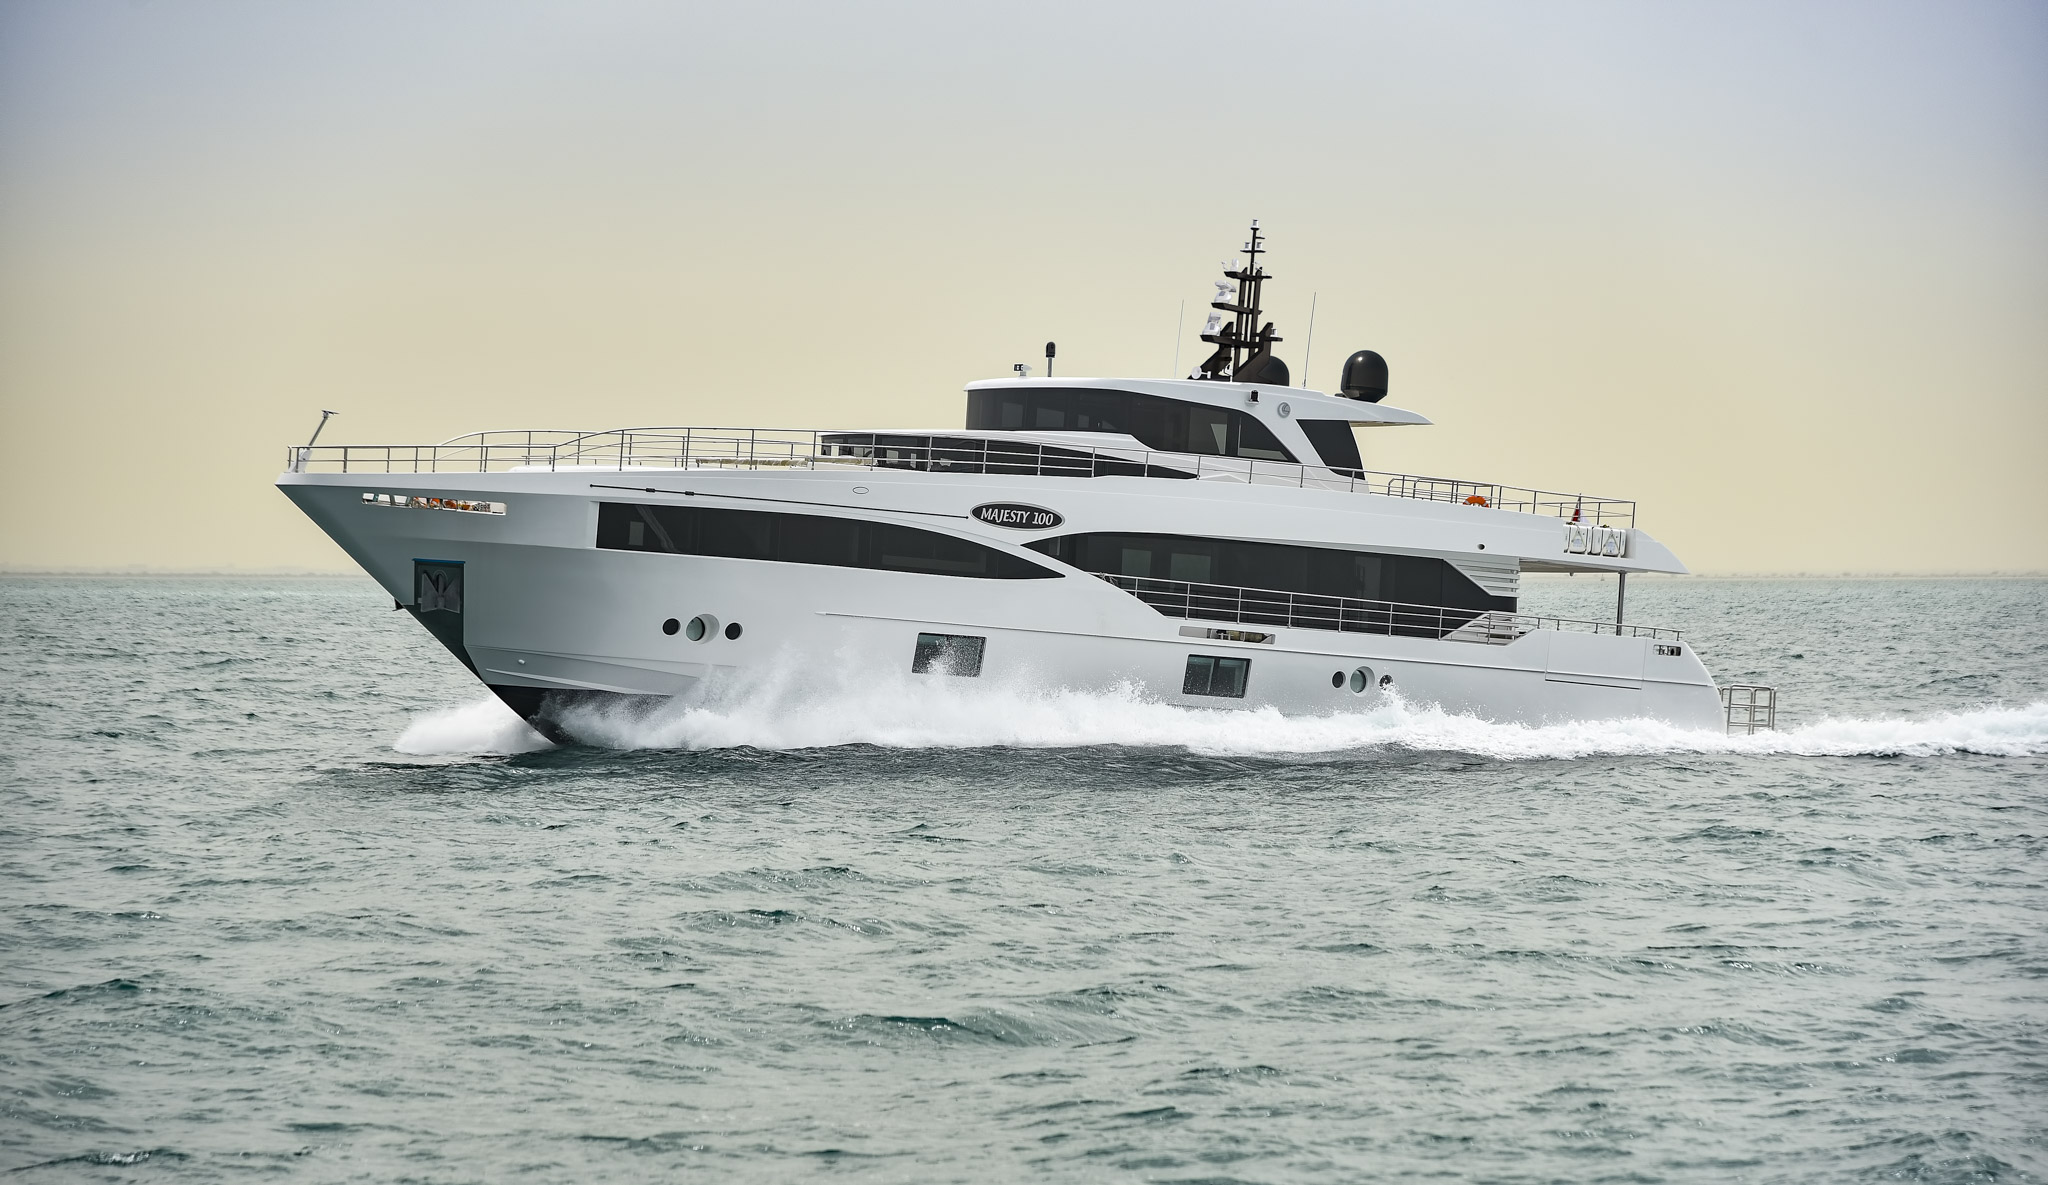 Gulf Craft Launches First Majesty 100 Yacht In Dubai